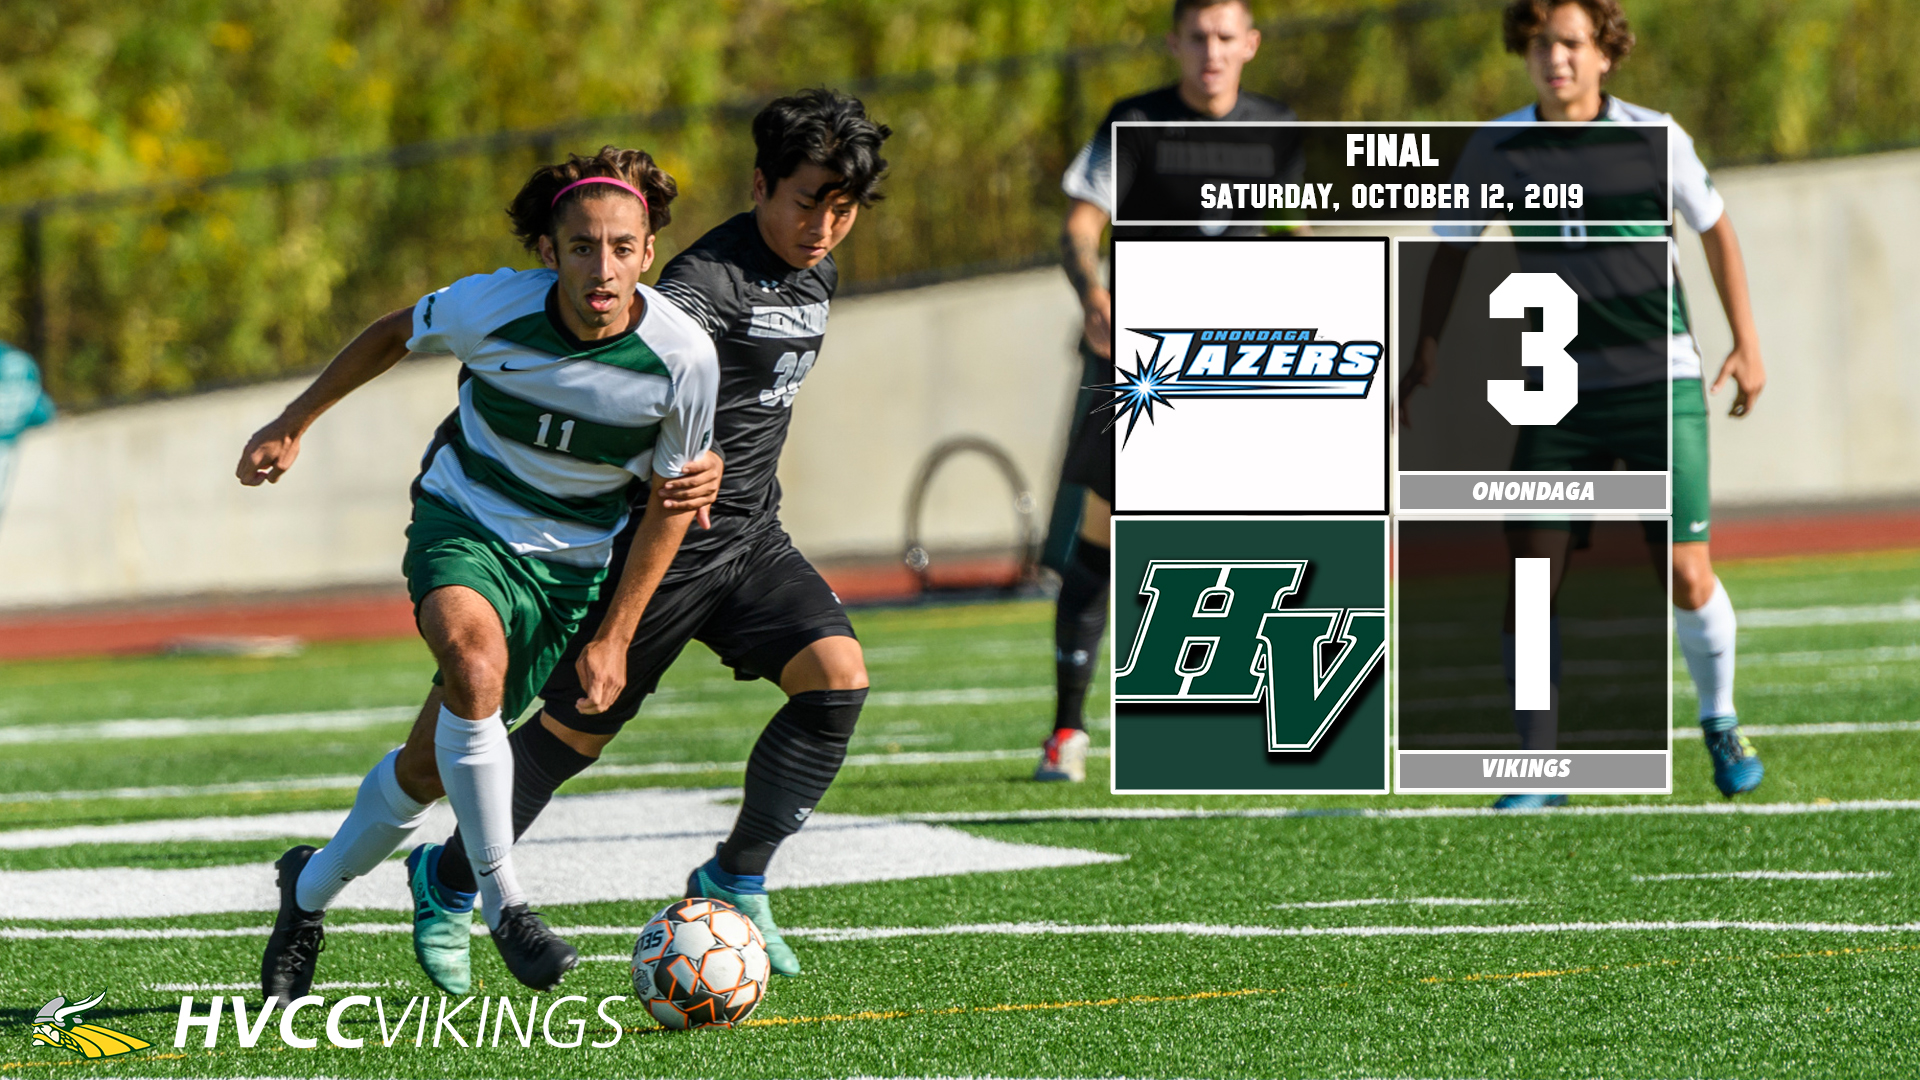 Men's soccer defeated by Onondaga 3-1 on Oct. 12, 2019